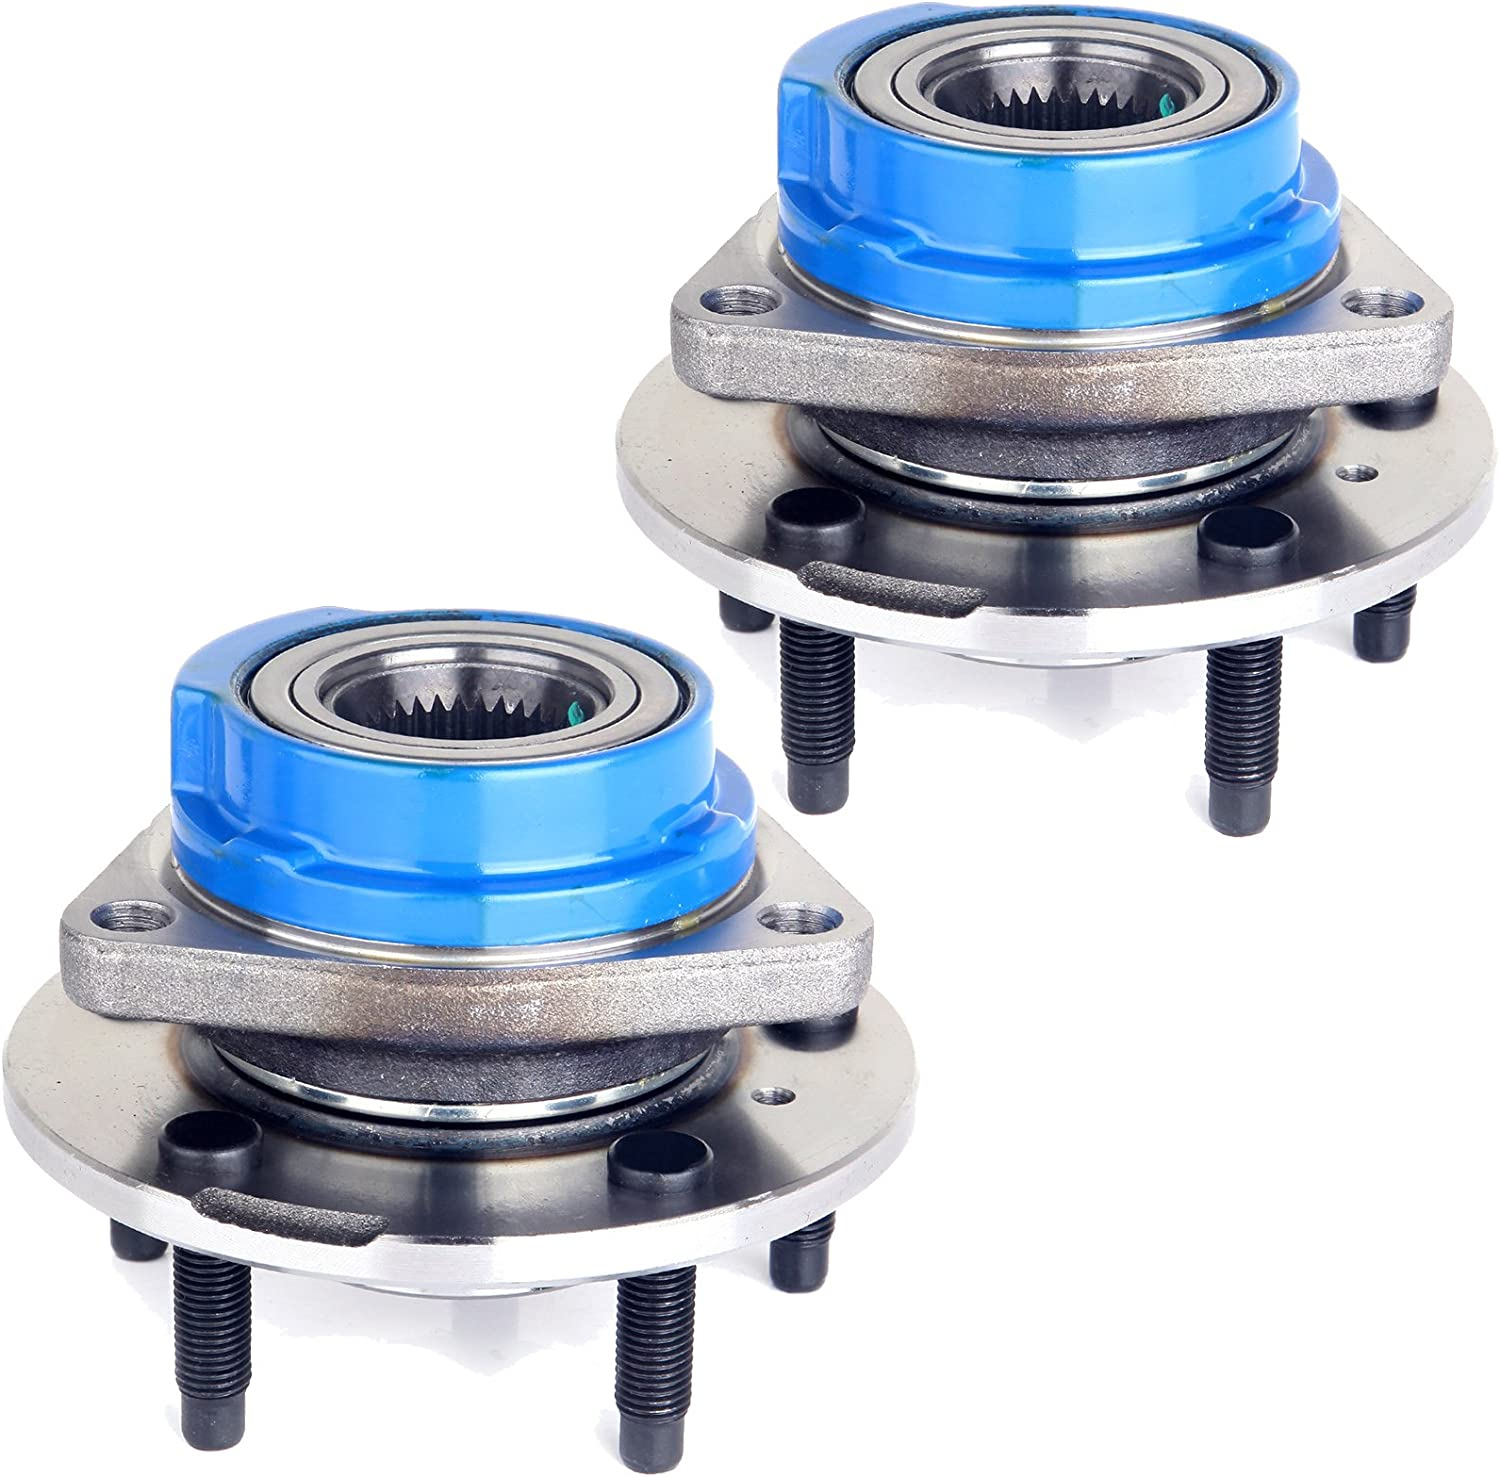 AUTOMUTO 513203 Wheel Quality inspection Hub Bearing Ranking TOP13 FIT Centur Buick for 2003-2005